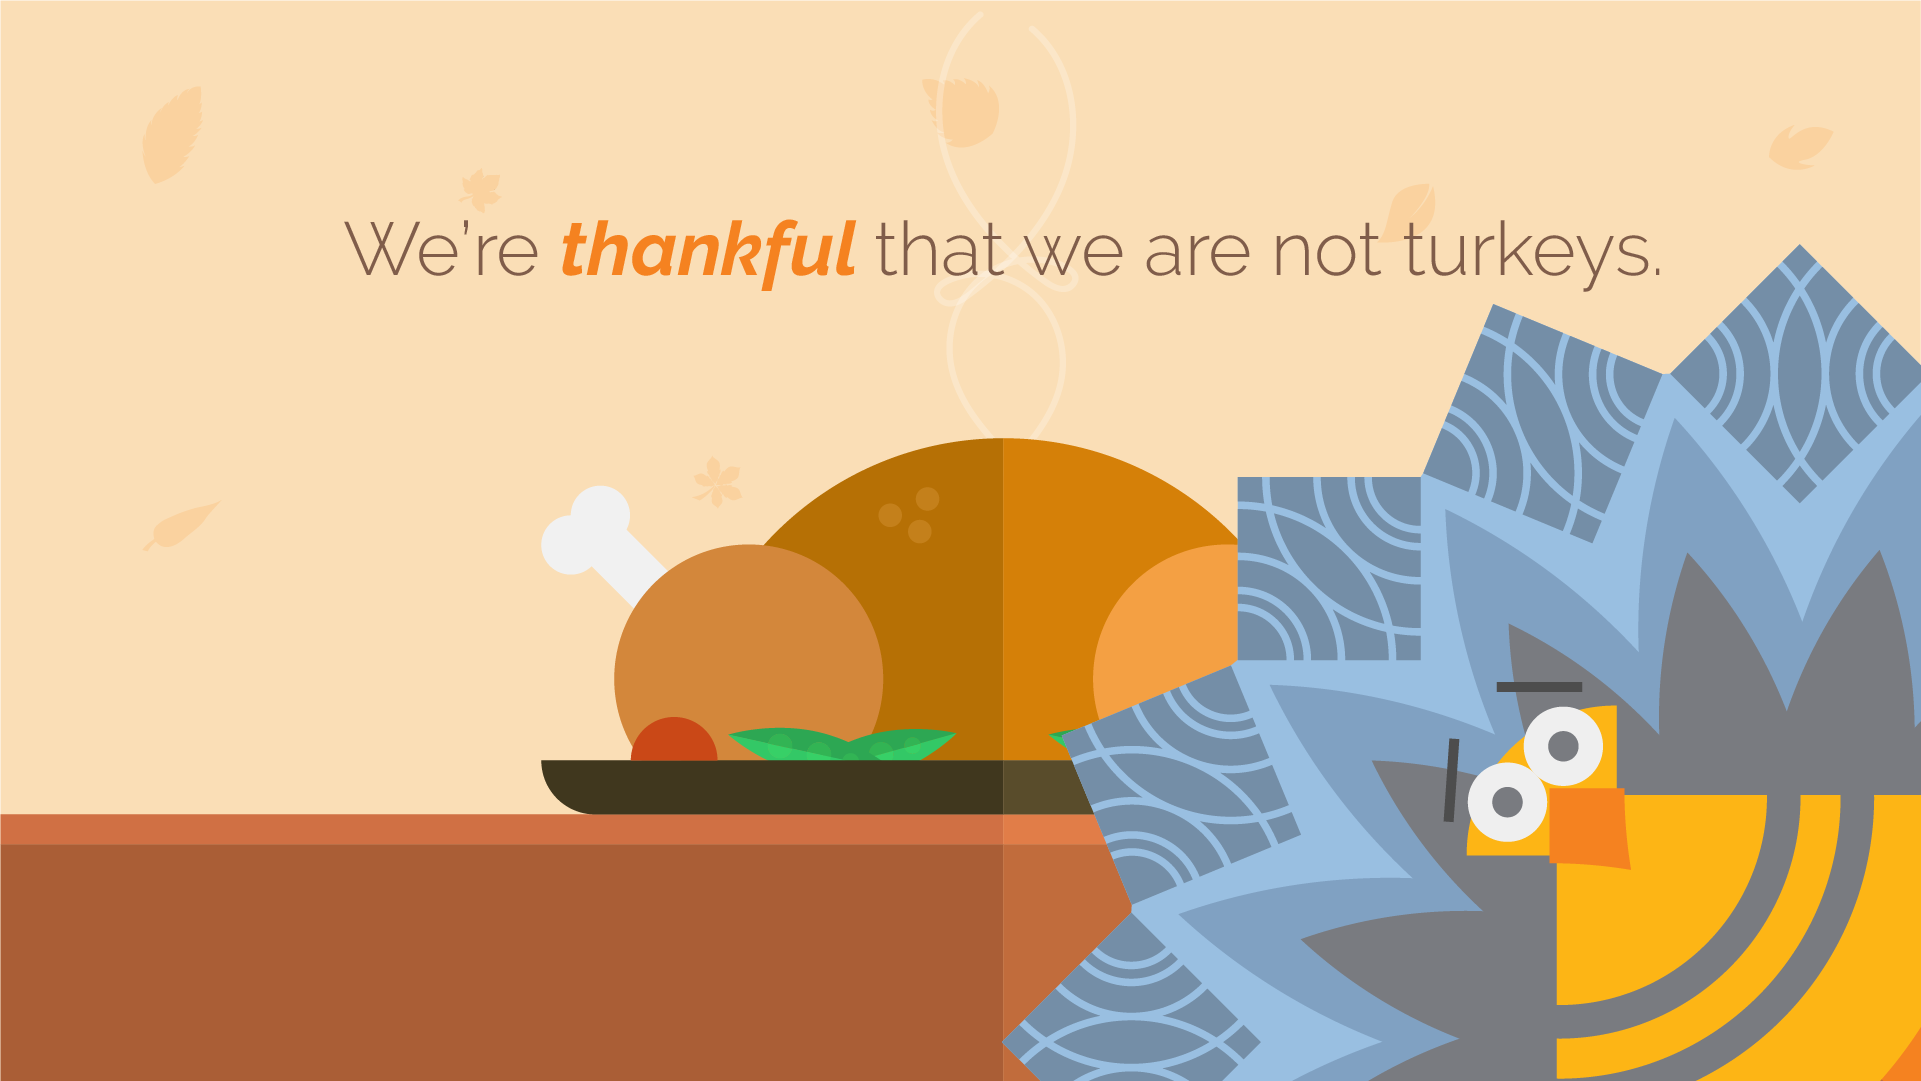 A flat design arcade scene used in an animated thanksgiving card for clients.